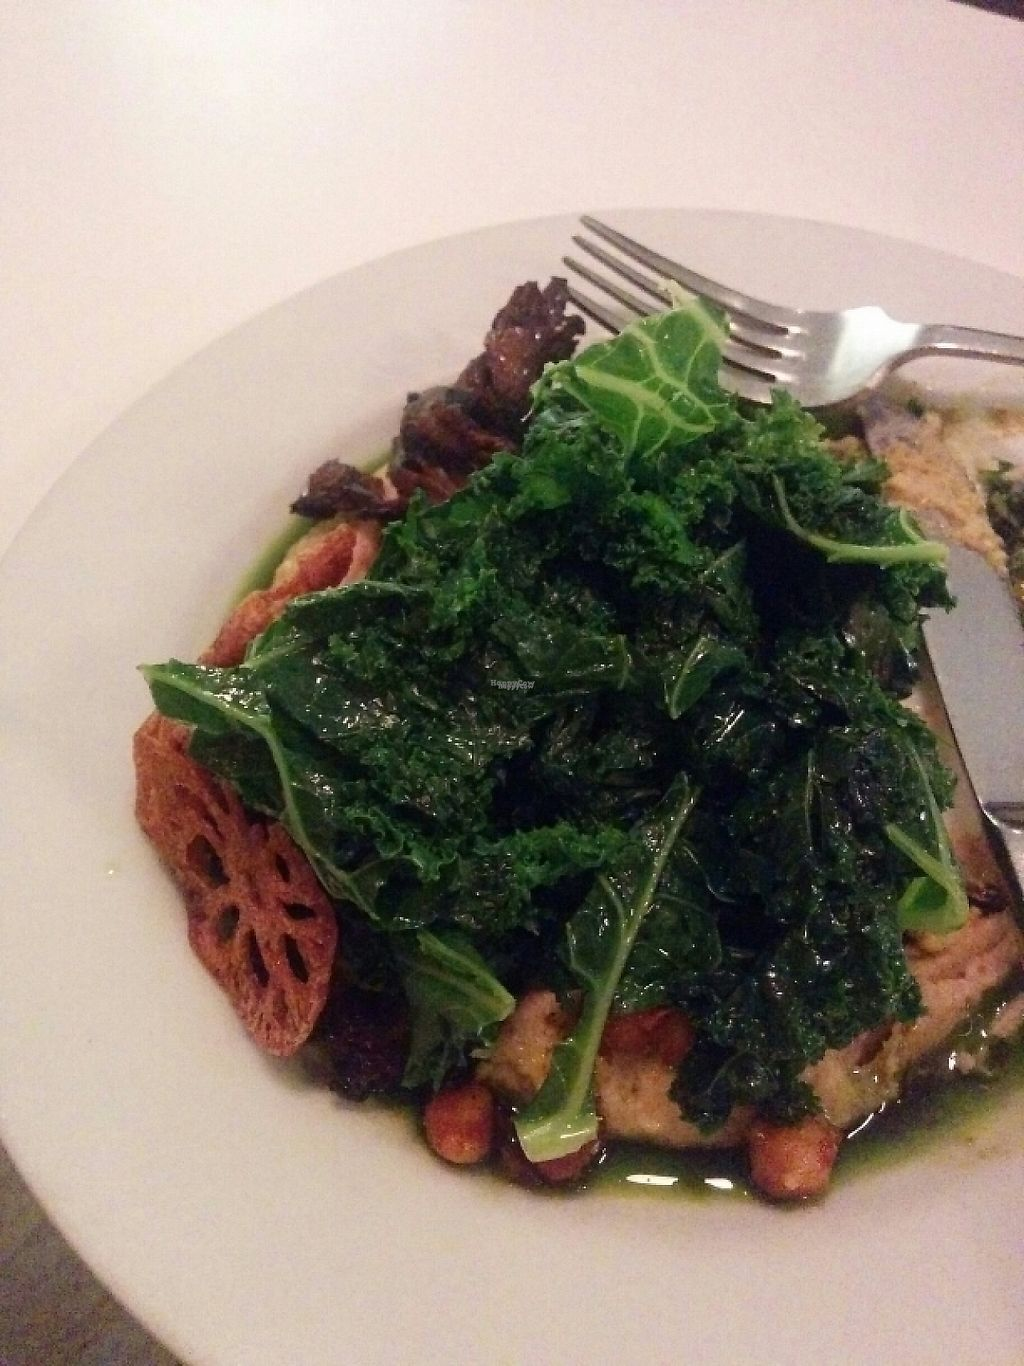 """Photo of Peacefood Cafe - Downtown  by <a href=""""/members/profile/Pachamamma"""">Pachamamma</a> <br/>Grilled mushrooms,  lotus crisp, kale,  parsnip puree,  chickpeas,  delicious!  <br/> February 1, 2017  - <a href='/contact/abuse/image/37453/220474'>Report</a>"""